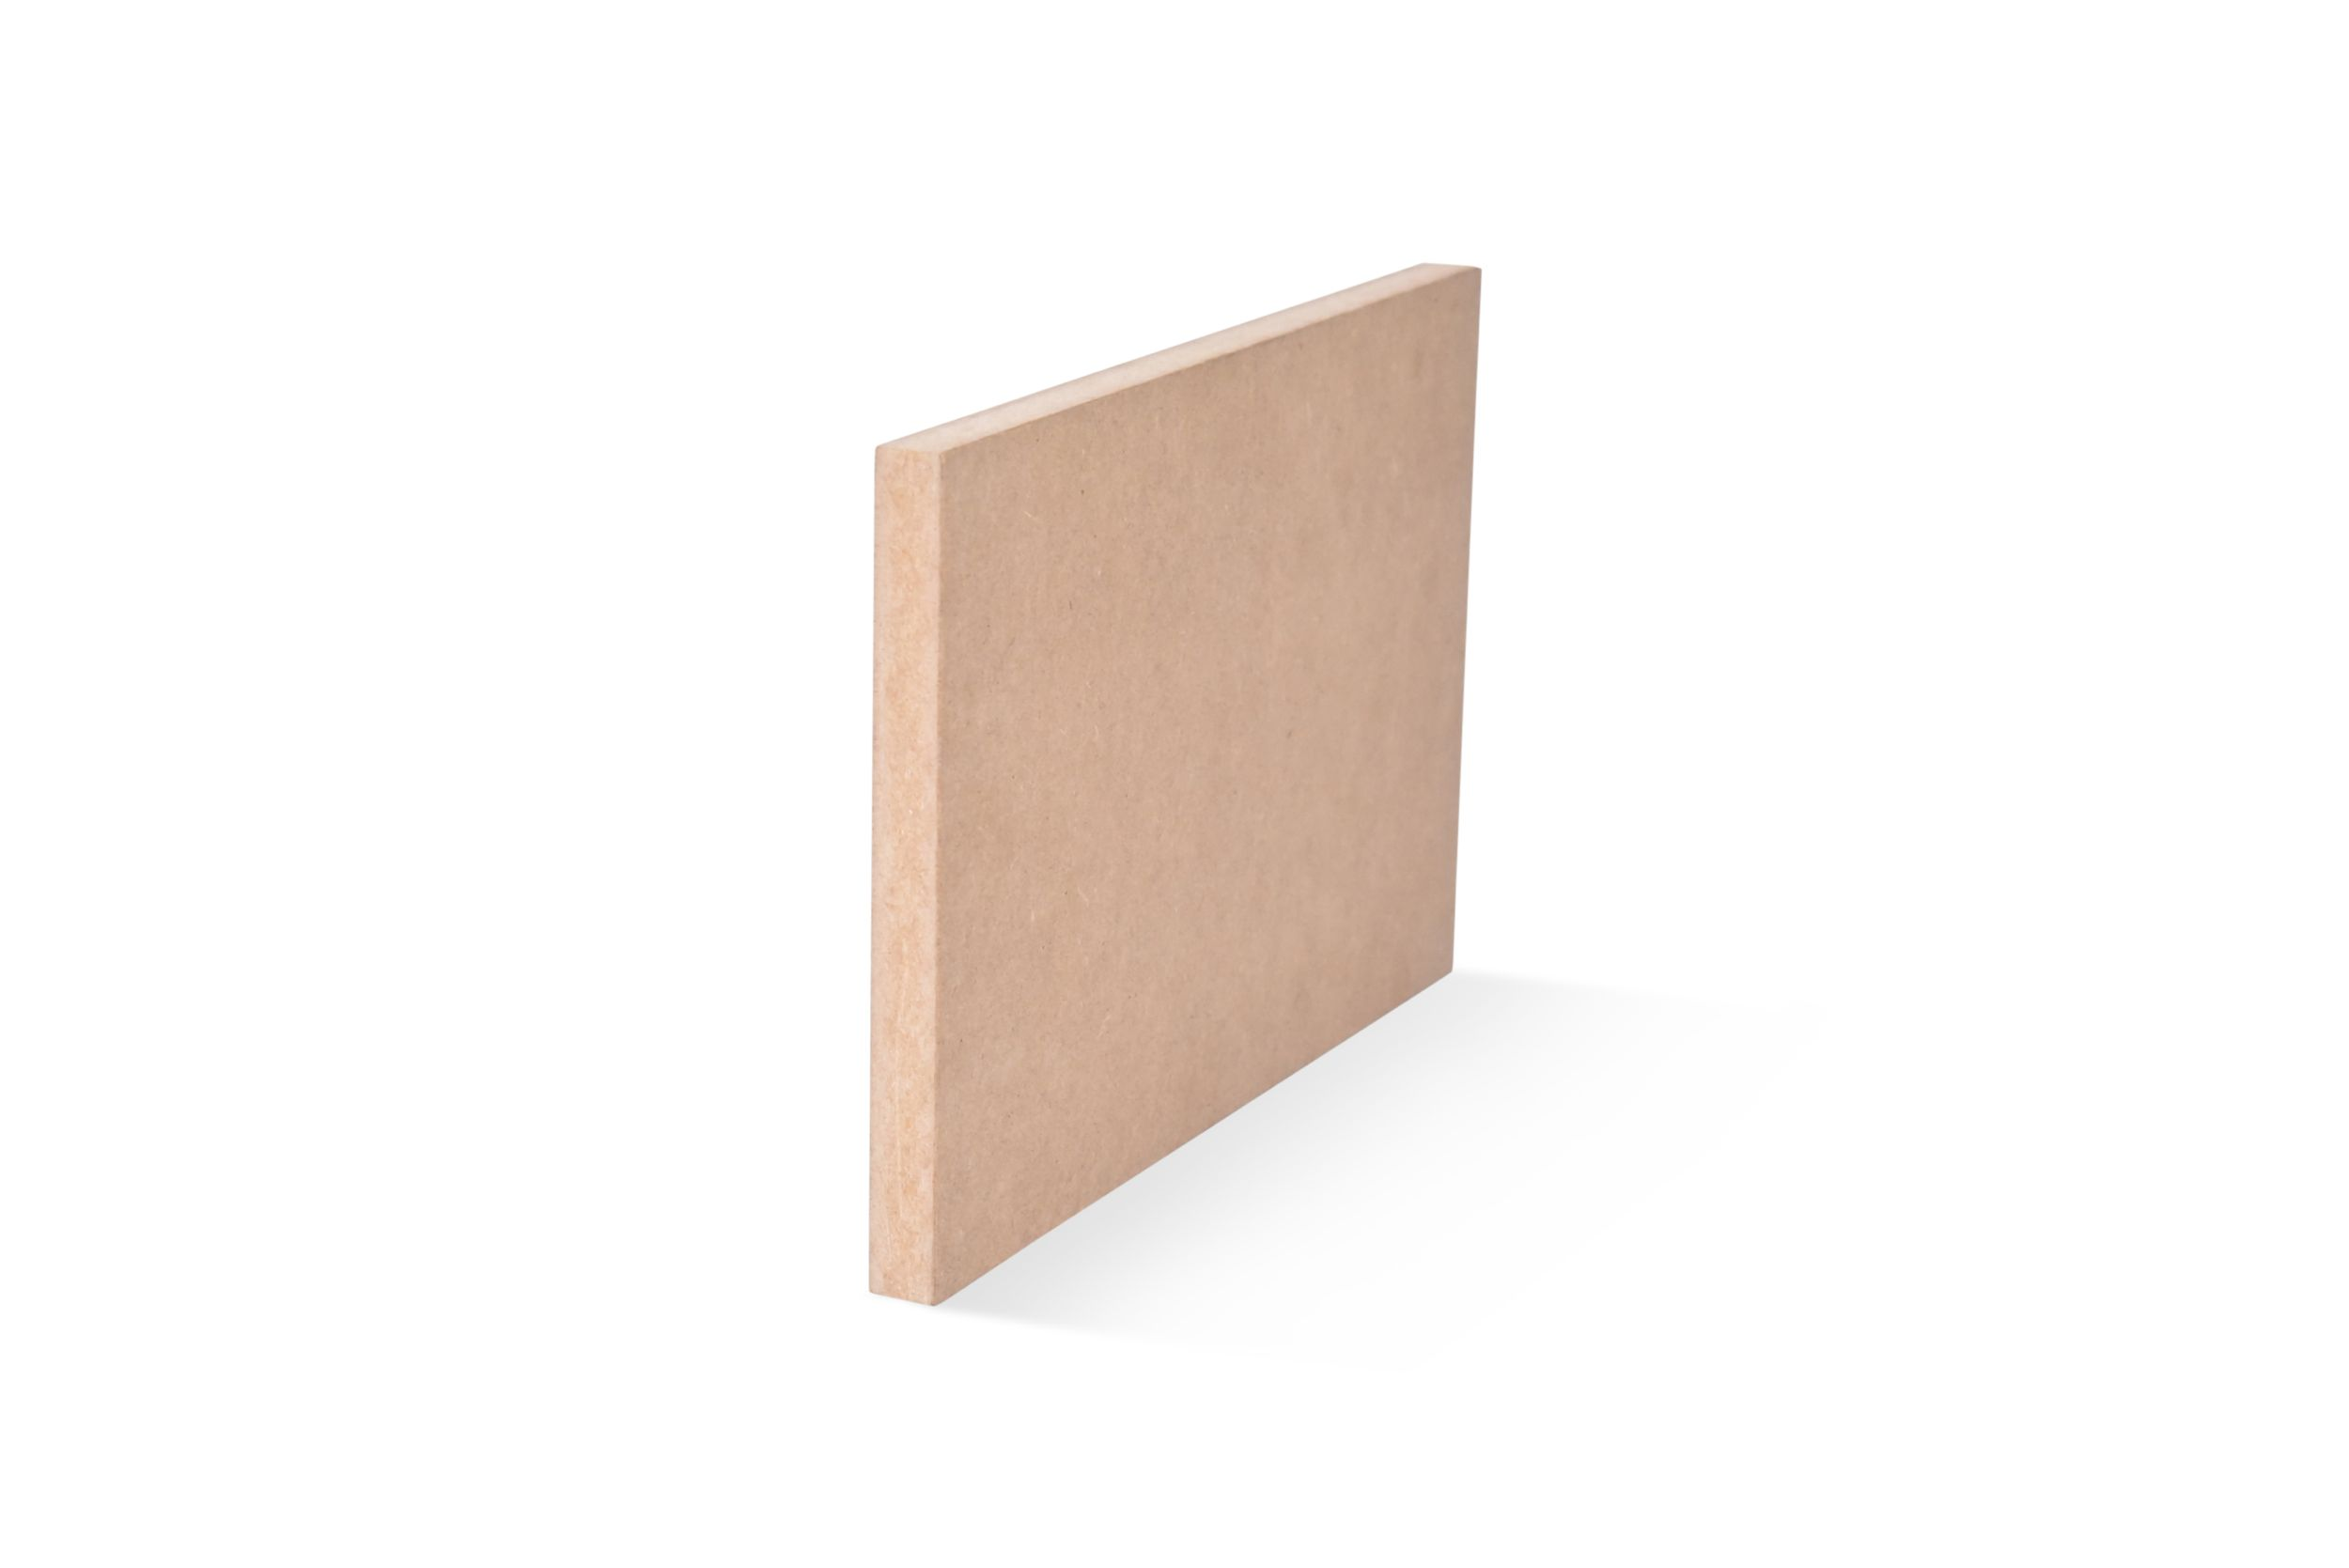 Panneau HDF (High Density Fiberboard)